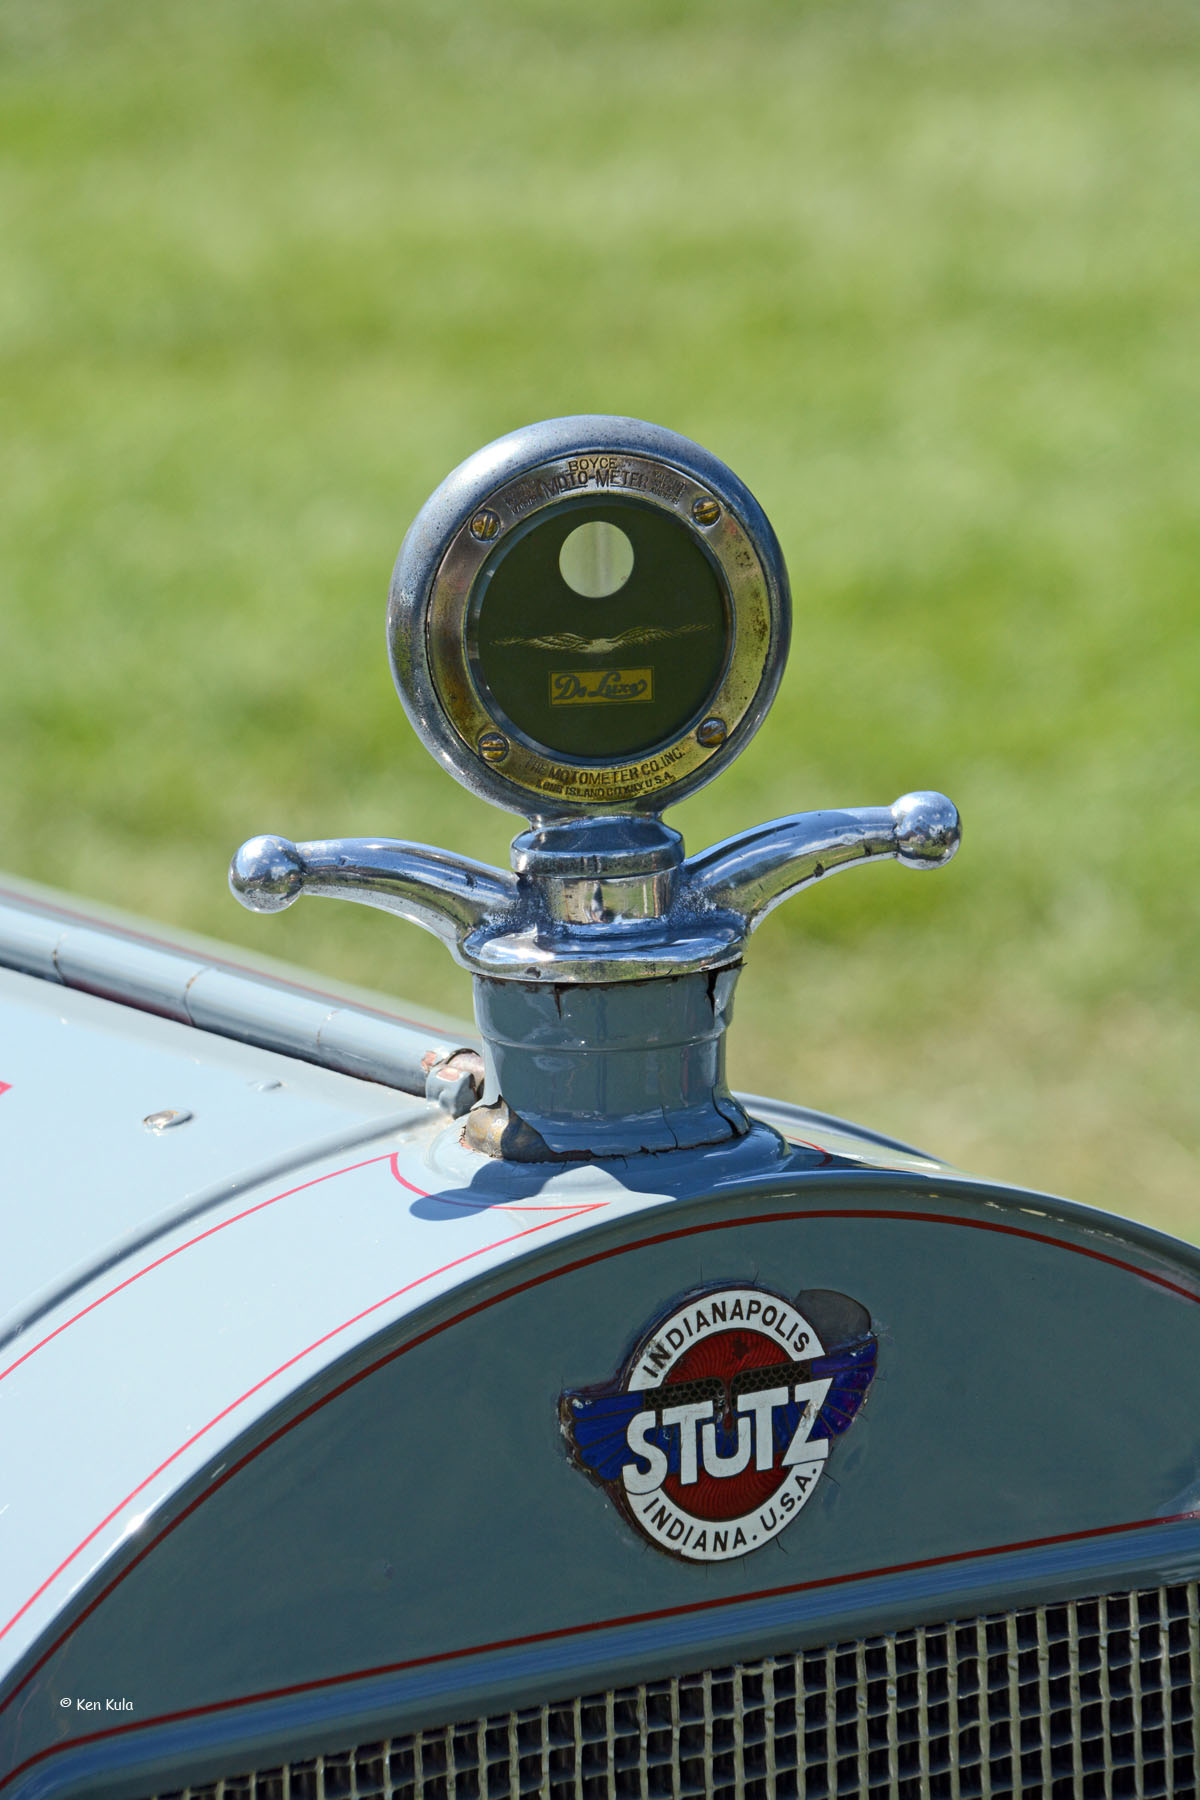 Stutz Bearcat nose